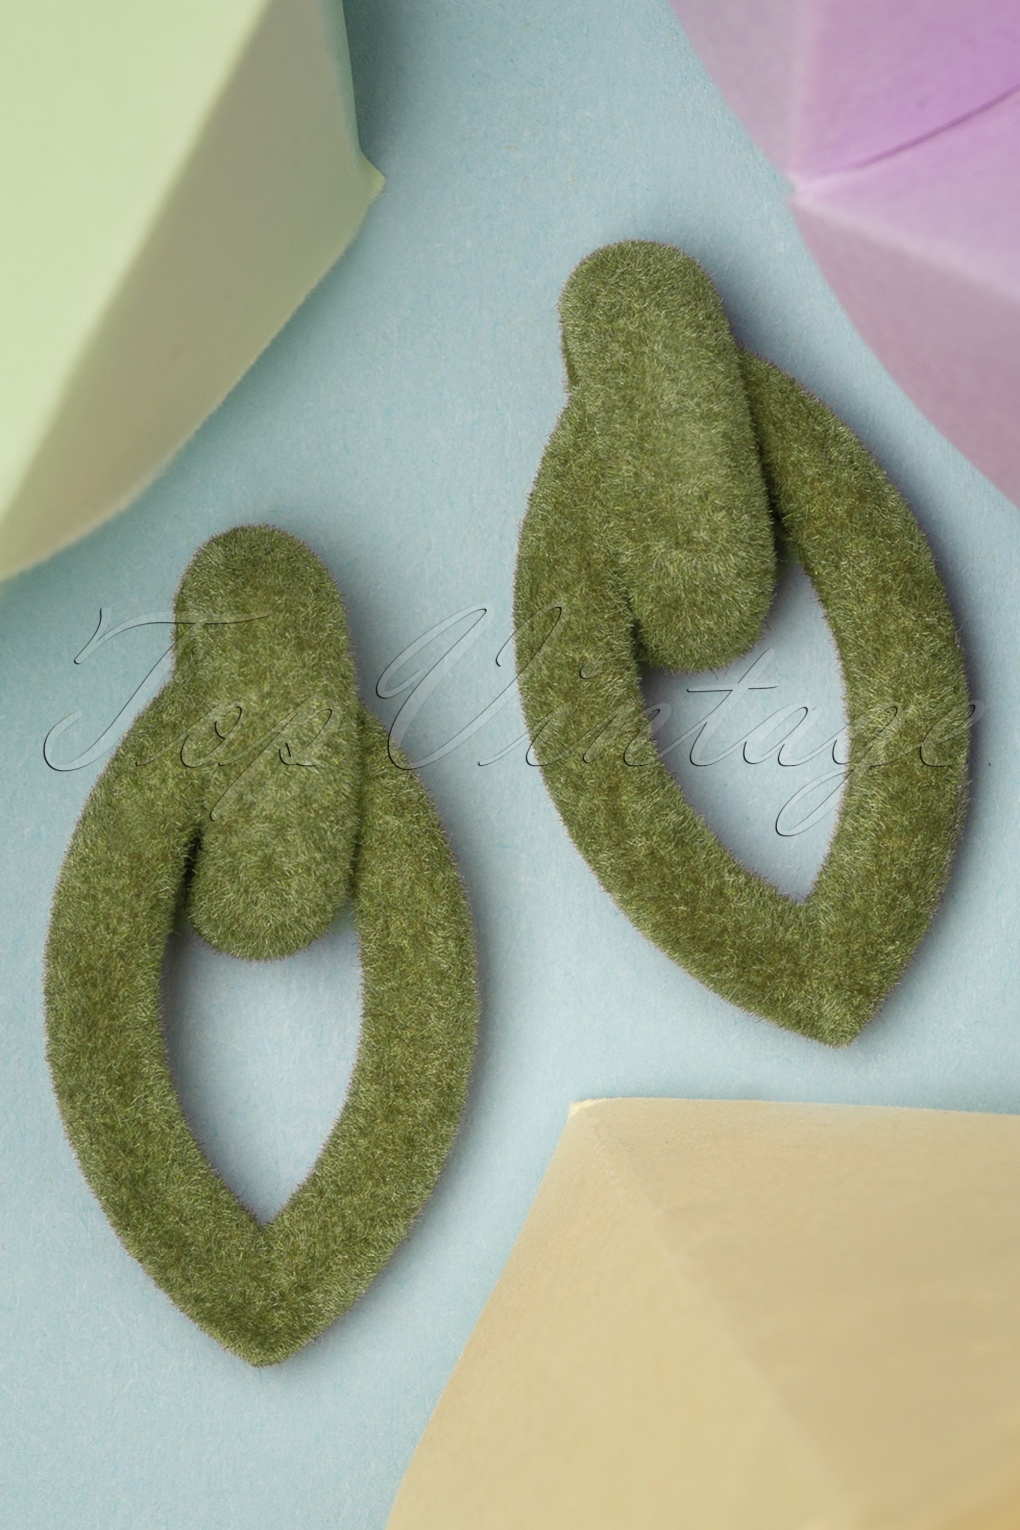 Vintage Style Jewelry, Retro Jewelry 50s Kaycee Velvet Earrings in Olive £8.91 AT vintagedancer.com